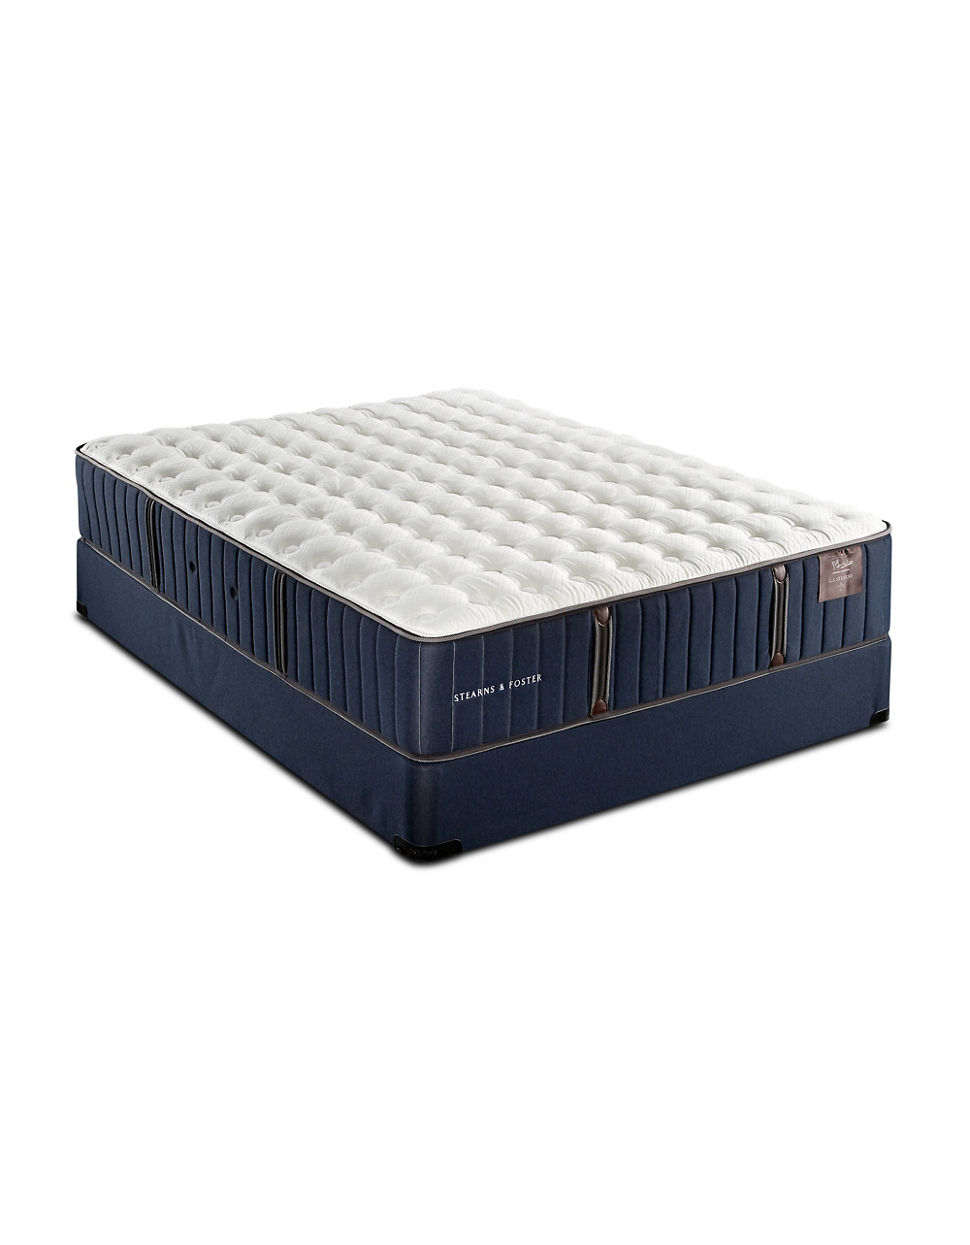 mattress chiropractor classic products the twin element recommended americanbedding